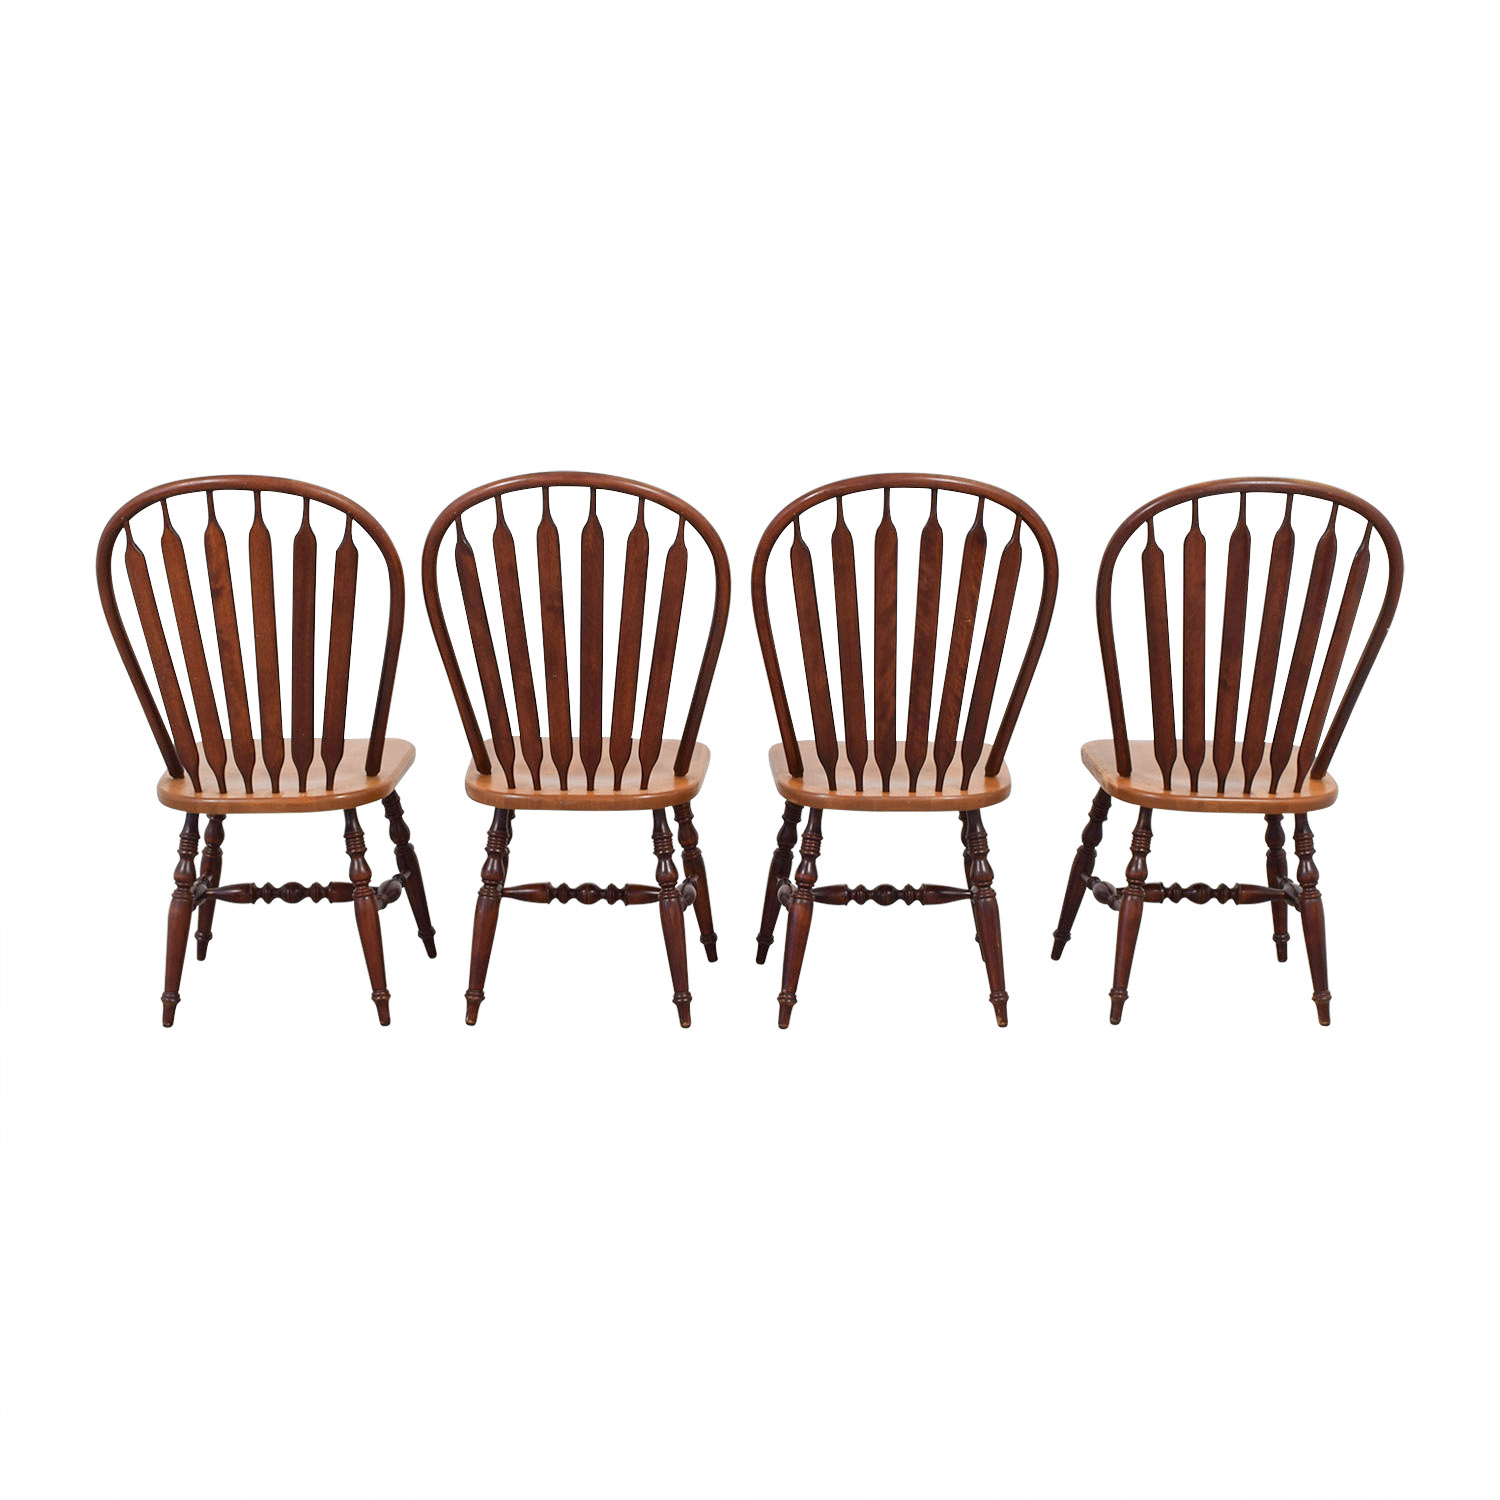 Canadel Canadel Windsor Wood Dining Chairs for sale